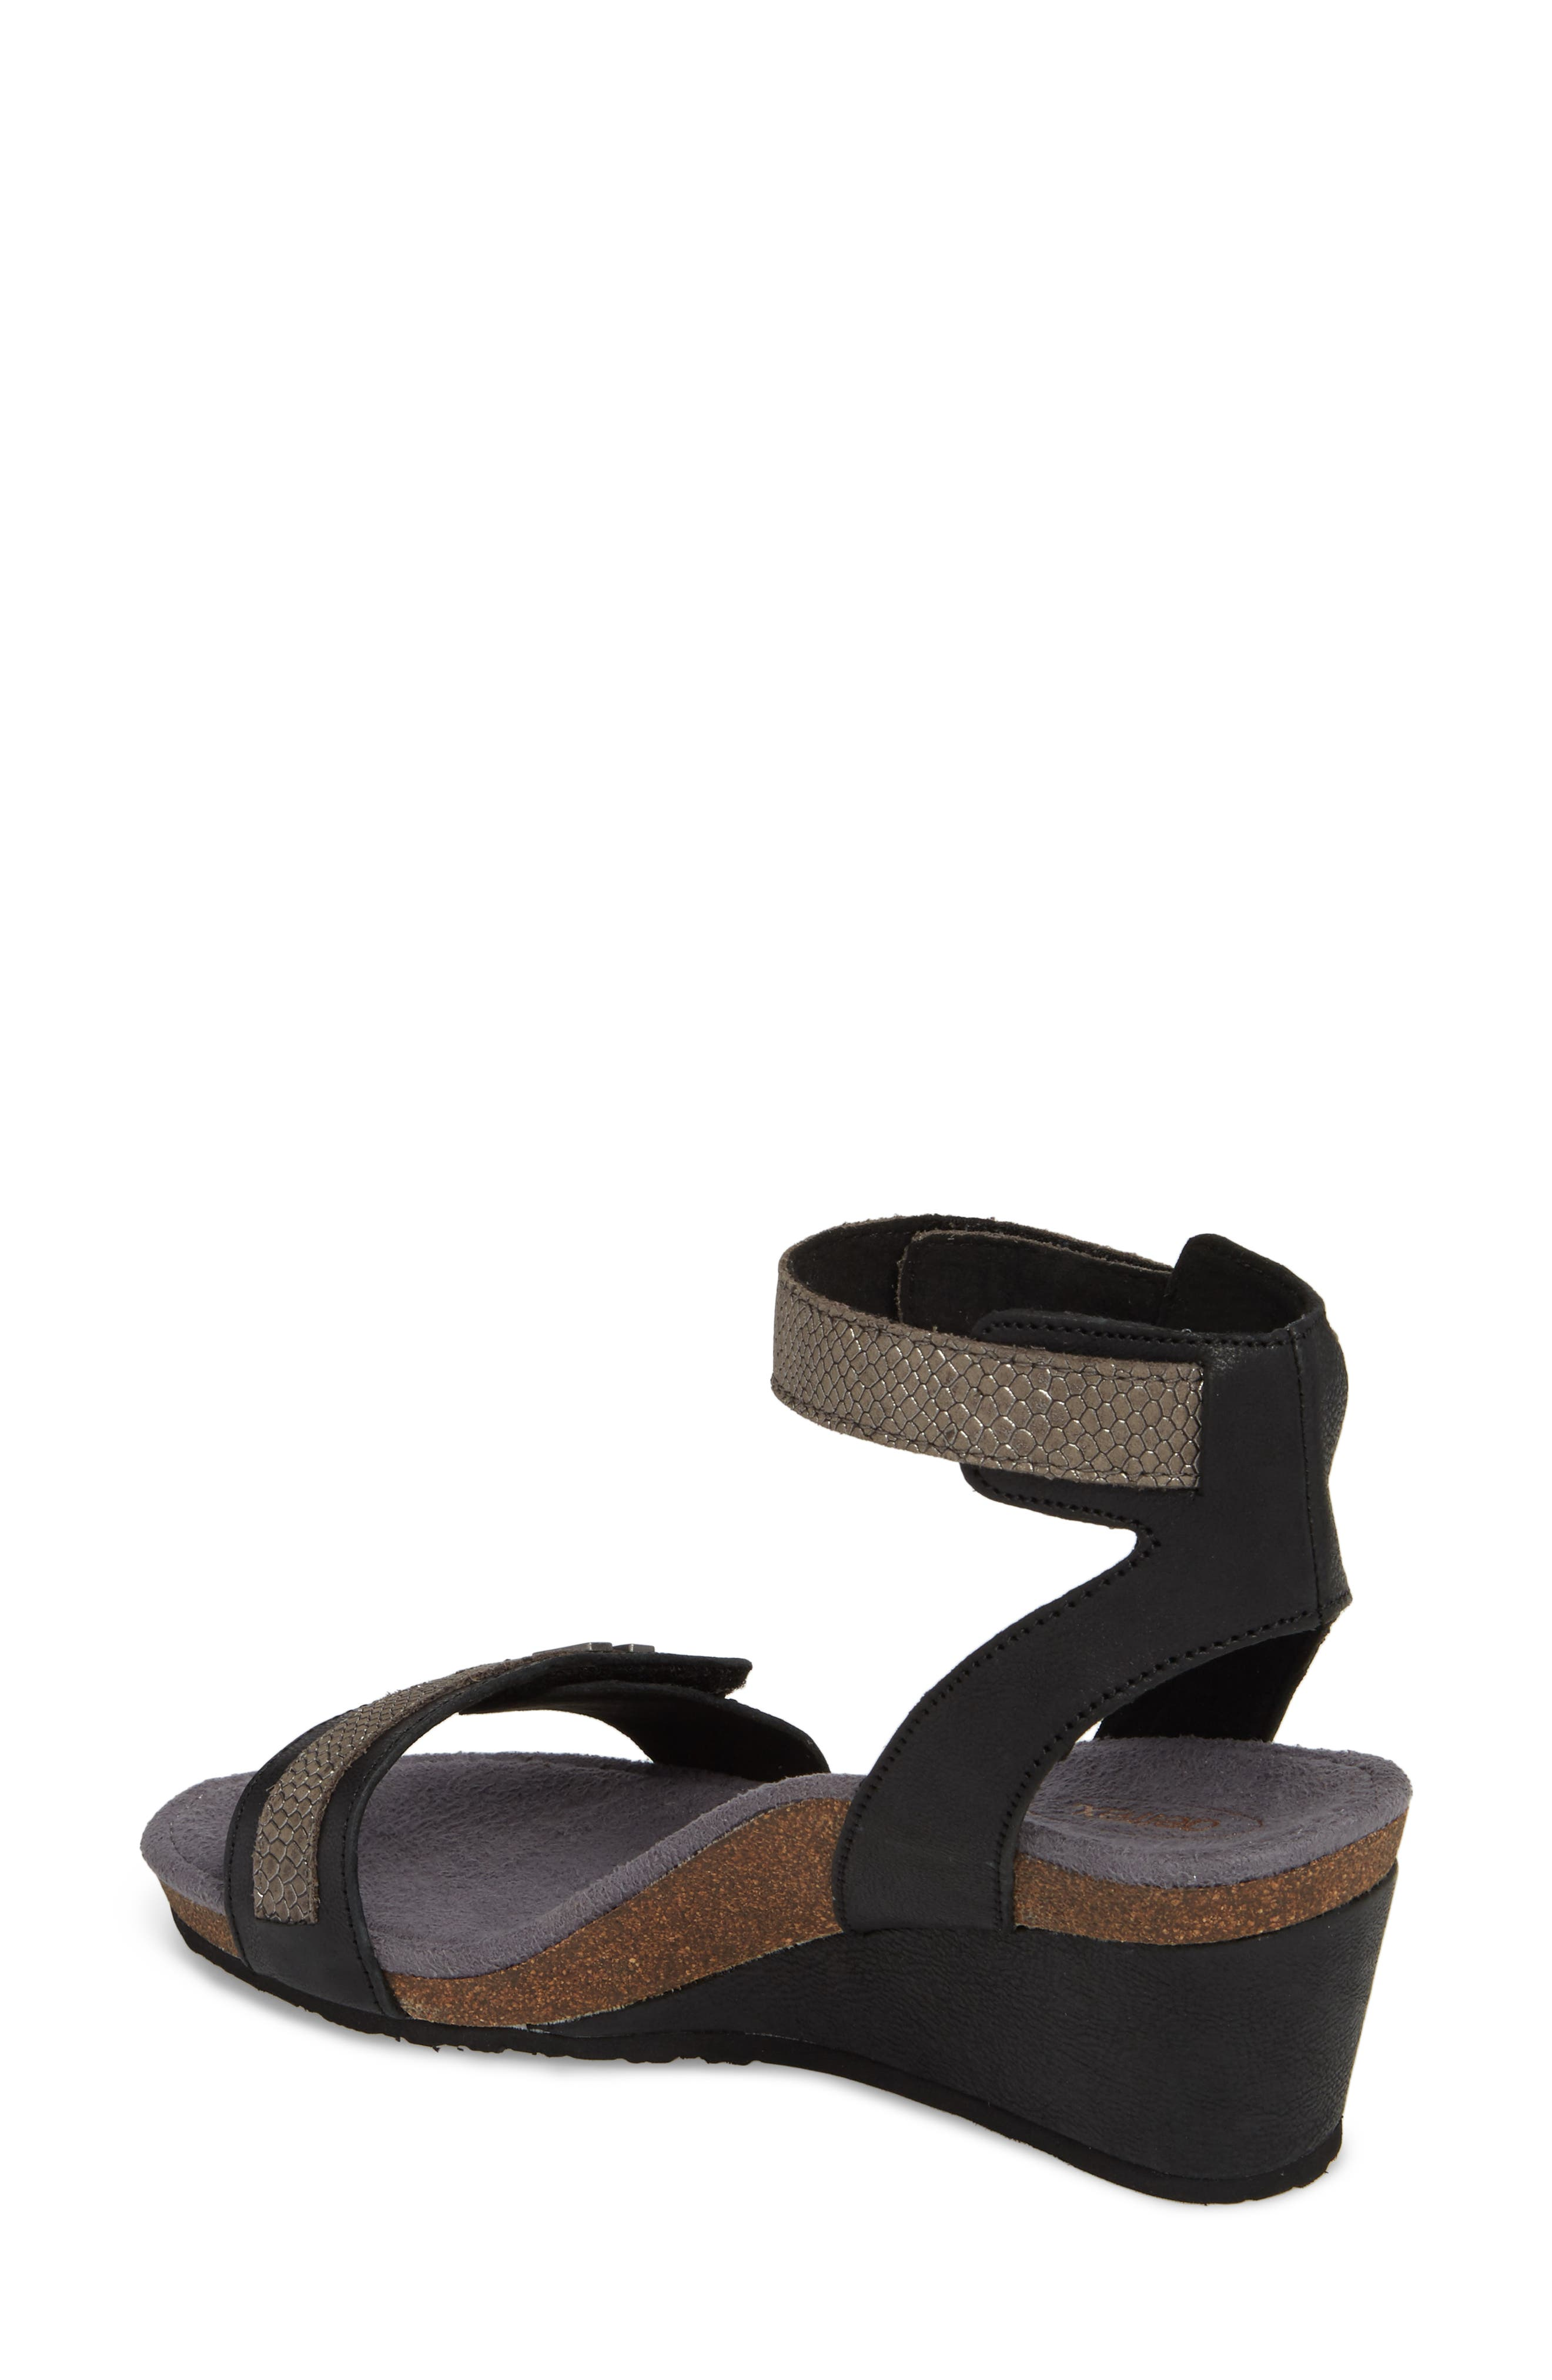 Gia Wedge Sandal,                             Alternate thumbnail 2, color,                             Black Leather